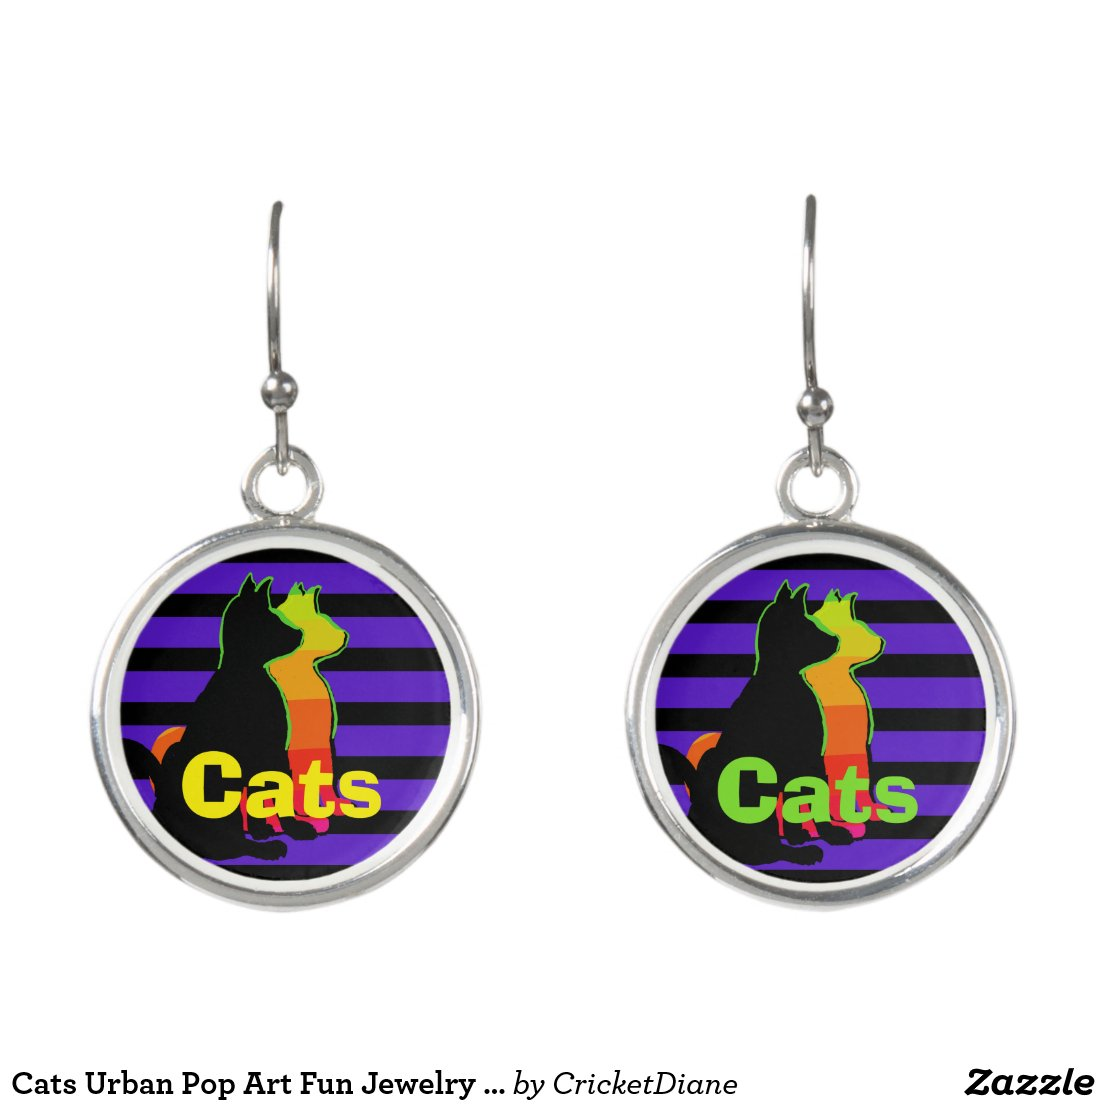 Cats Urban Pop Art Fun Jewelry CricketDiane Earrings